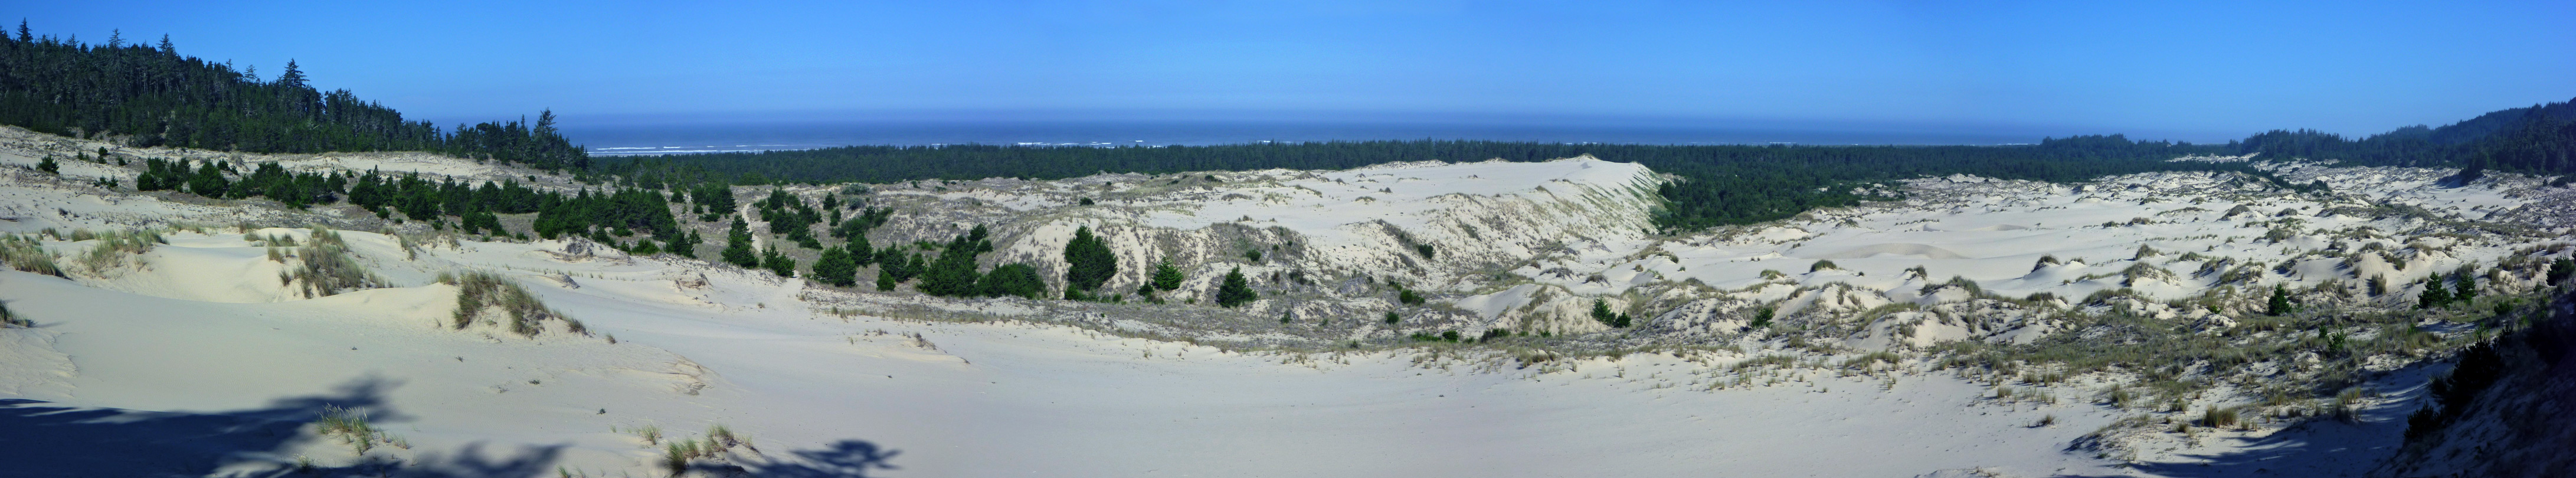 Dunes and forest near Tahkenitch Creek